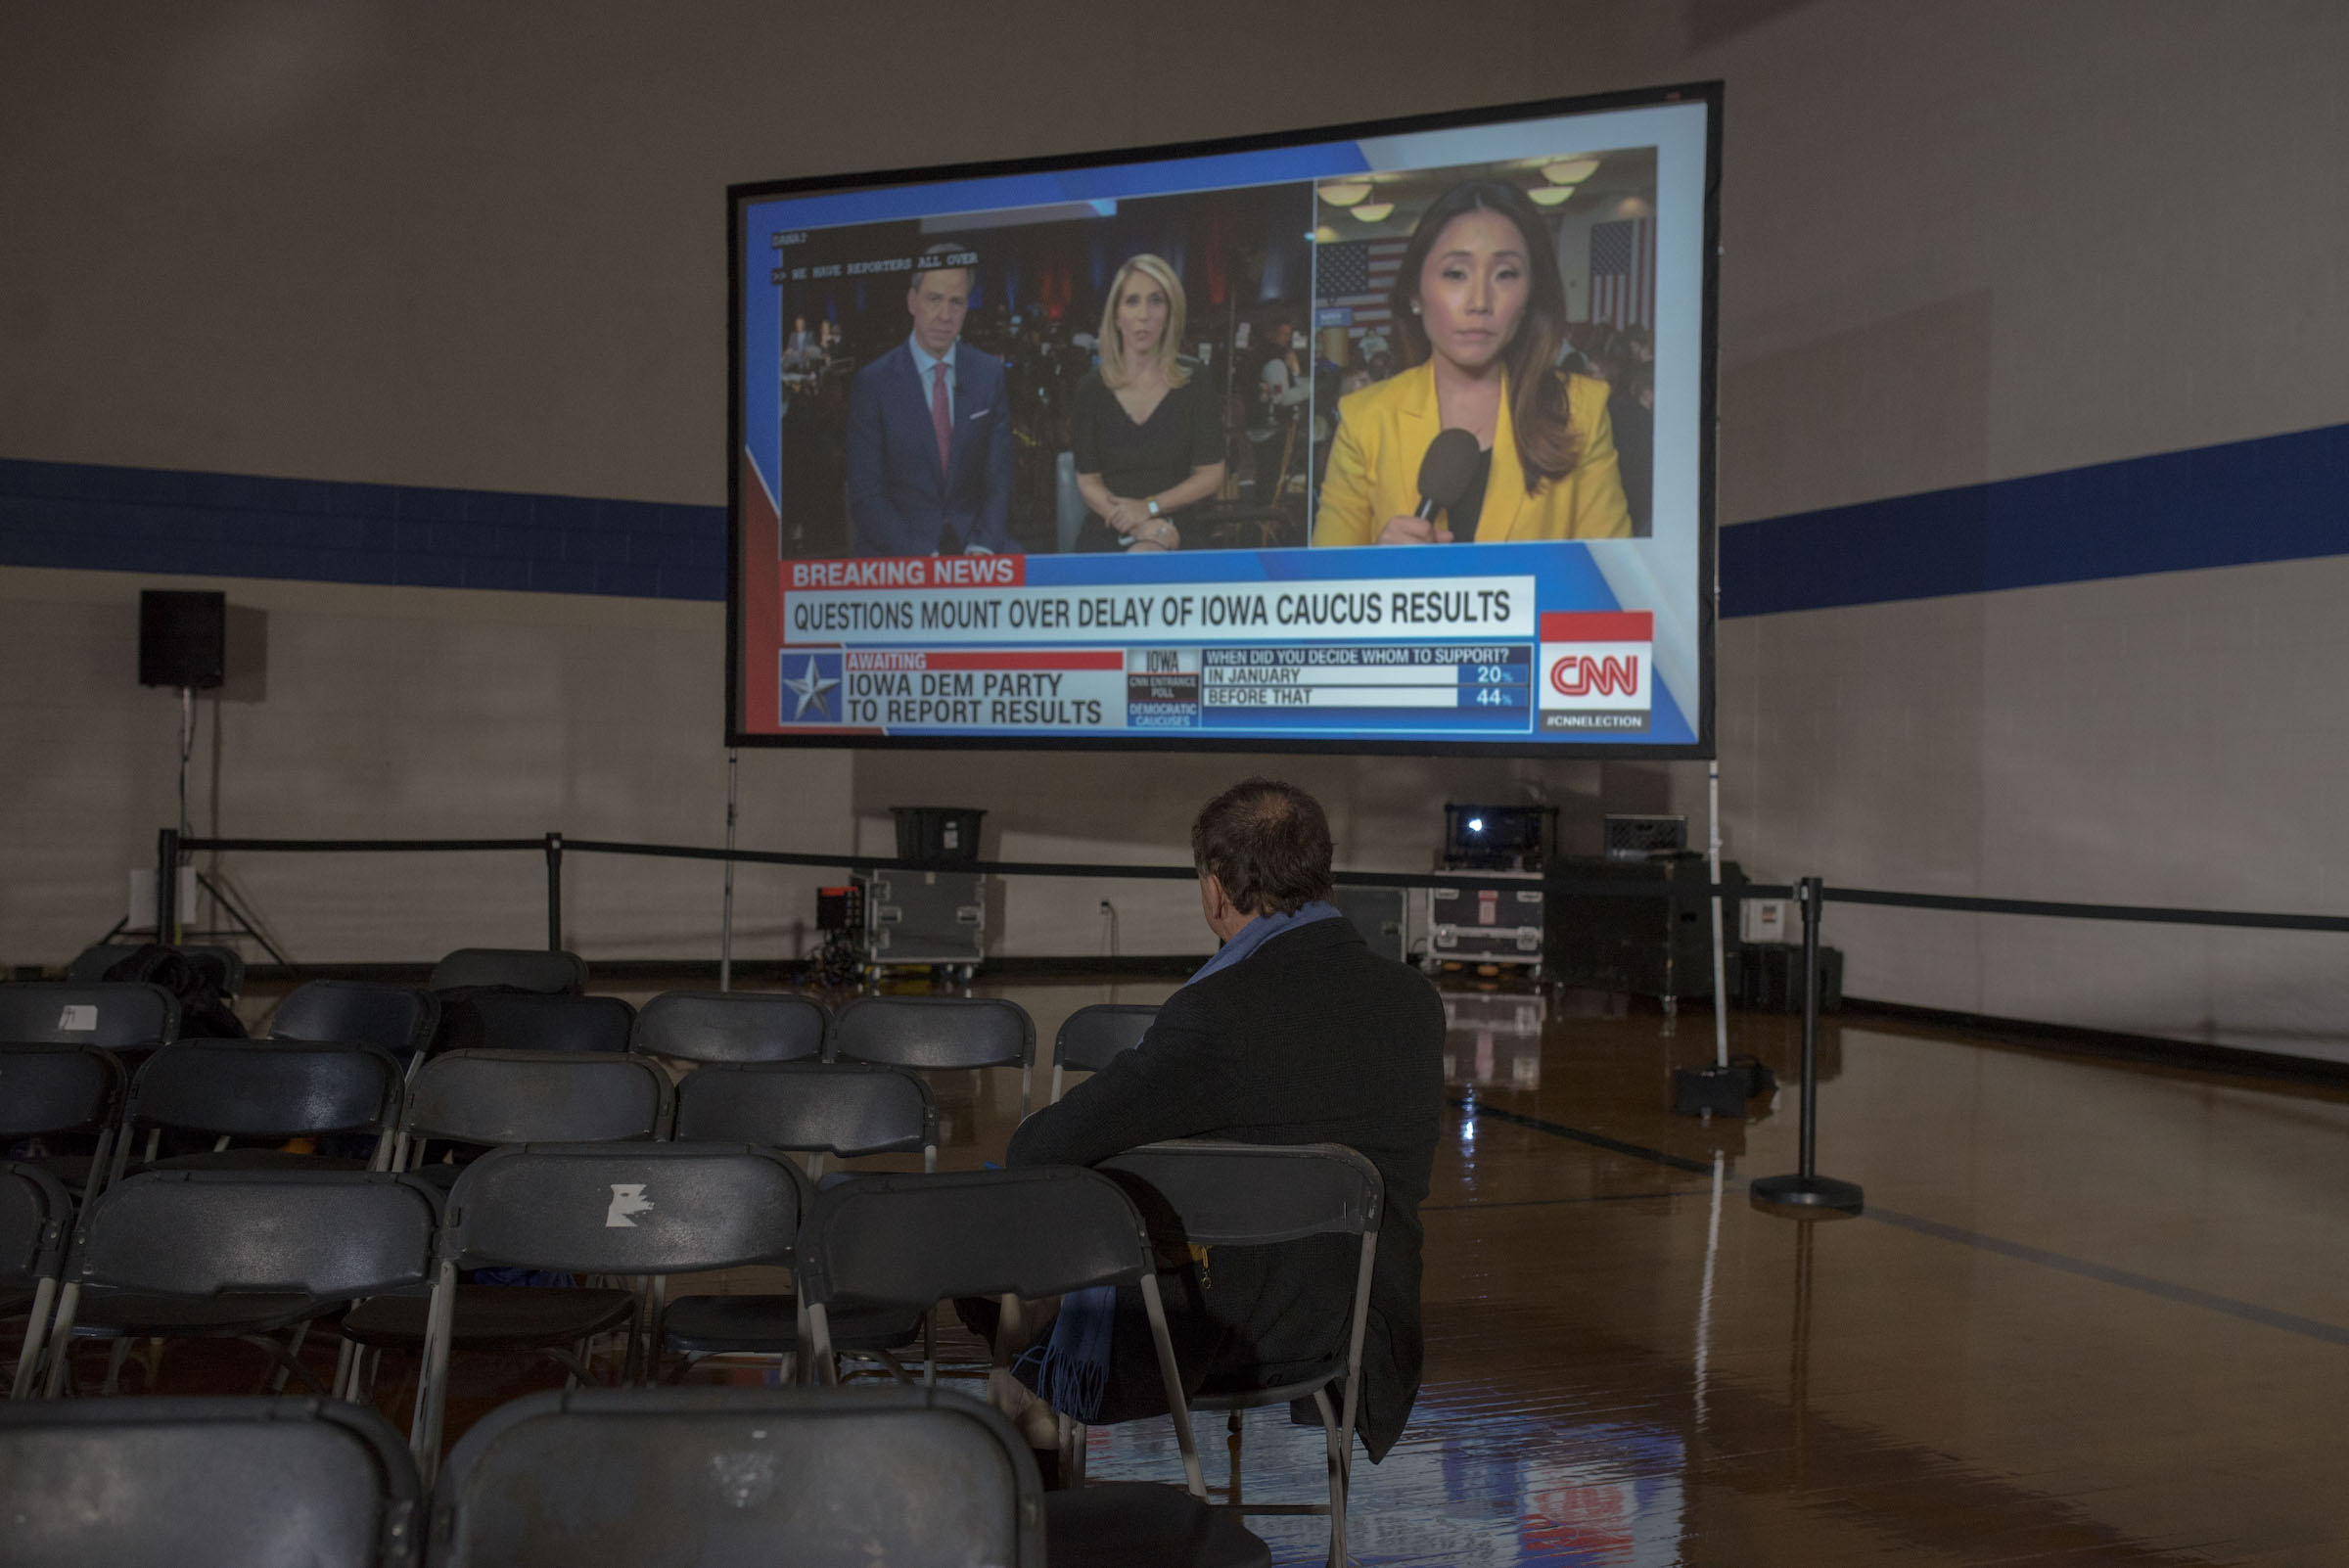 An attendee at an Iowa Caucus watches the news on Caucus Day in Des Moines, Iowa on Feb. 3, 2020.